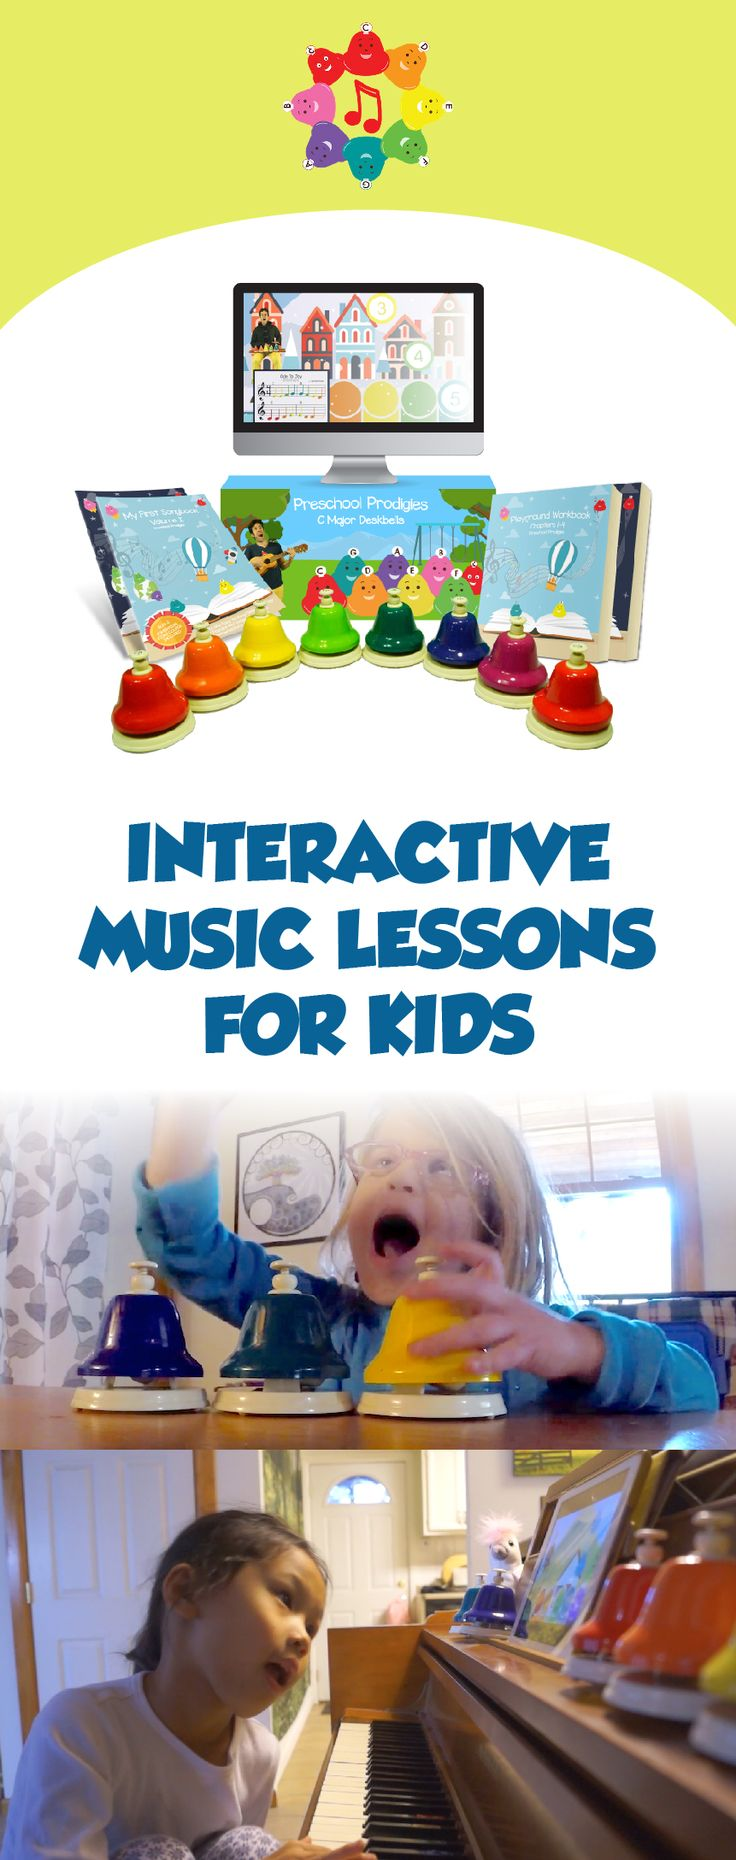 157 best preschool prodigies images on pinterest music education interactive music lessons for kids now featuring primary school lessons and songs free starter program fandeluxe PDF